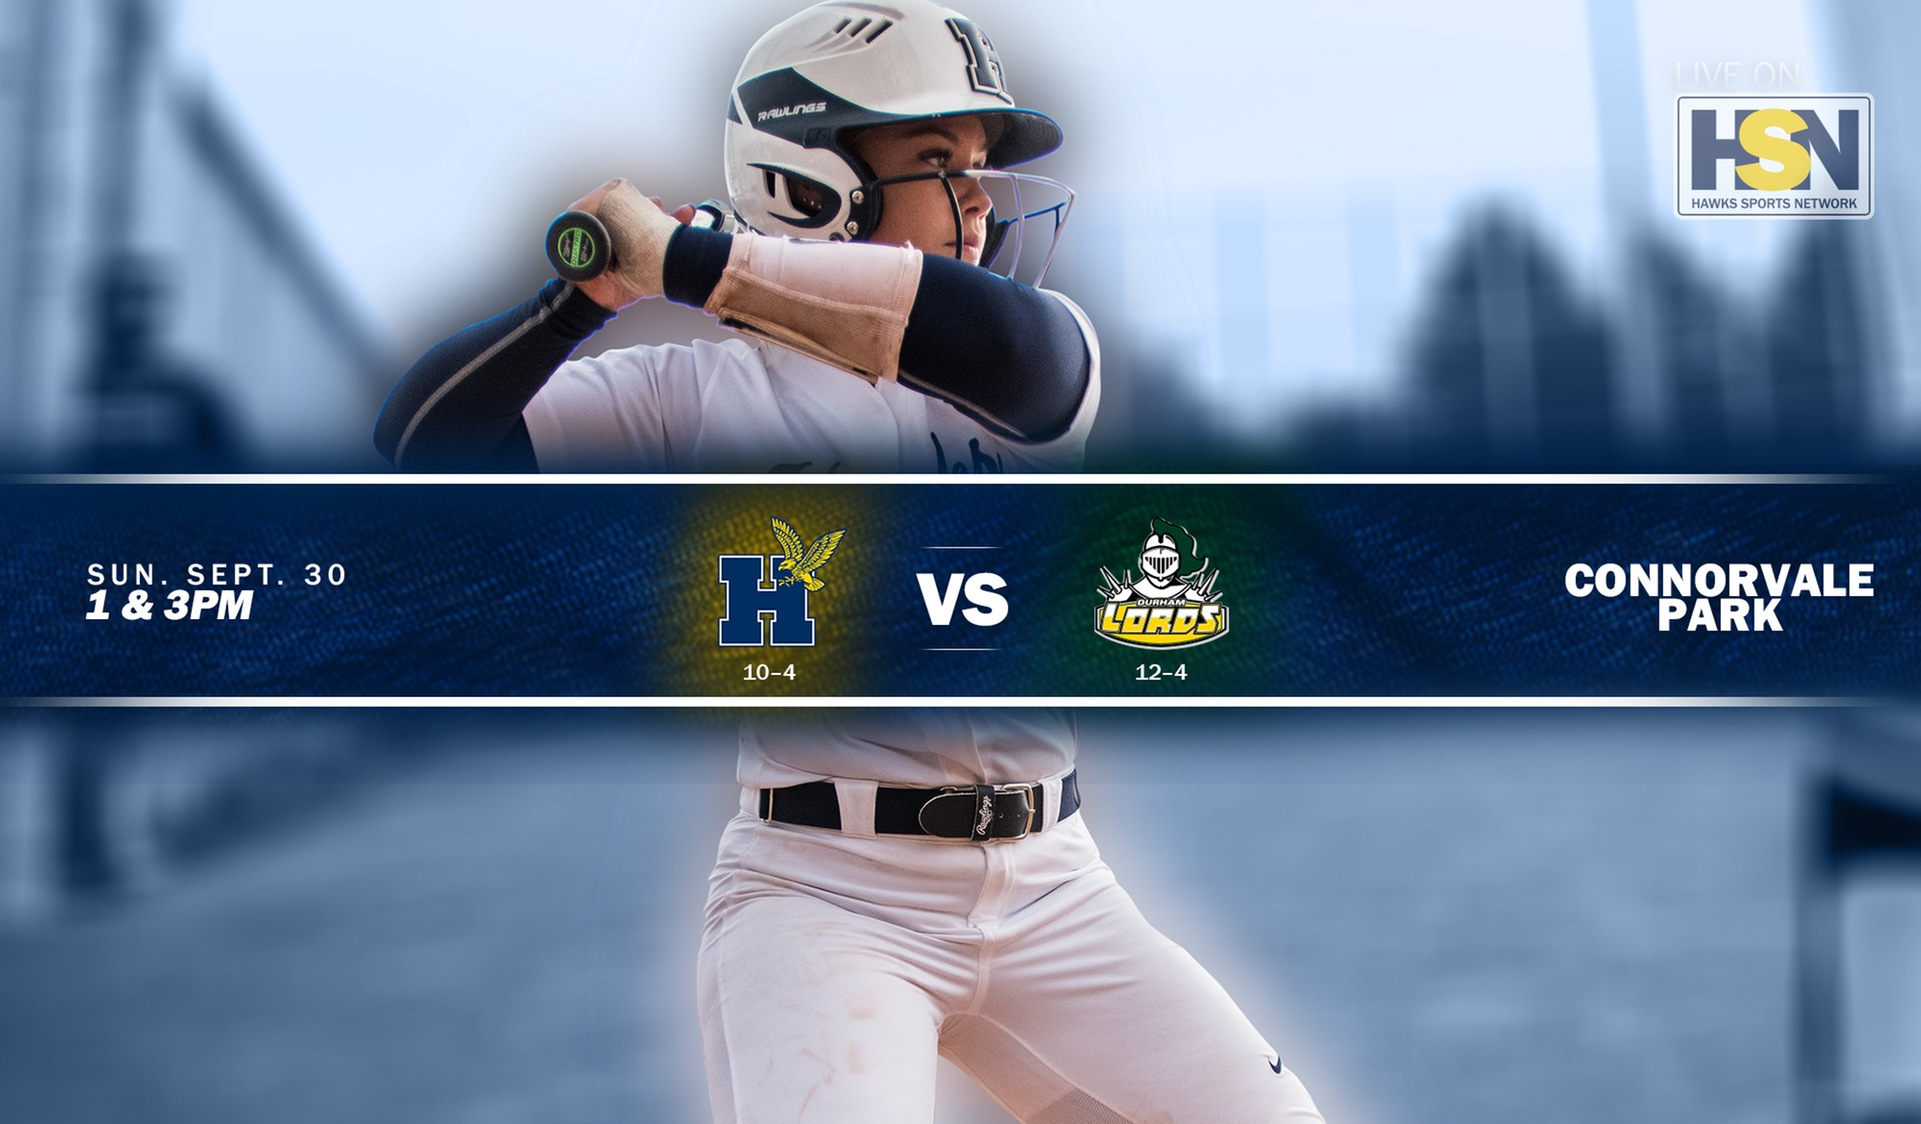 HAWKS HOST DEFENDING CHAMPS FROM DURHAM IN KEY MATCH-UP ON SUNDAY AT HOME